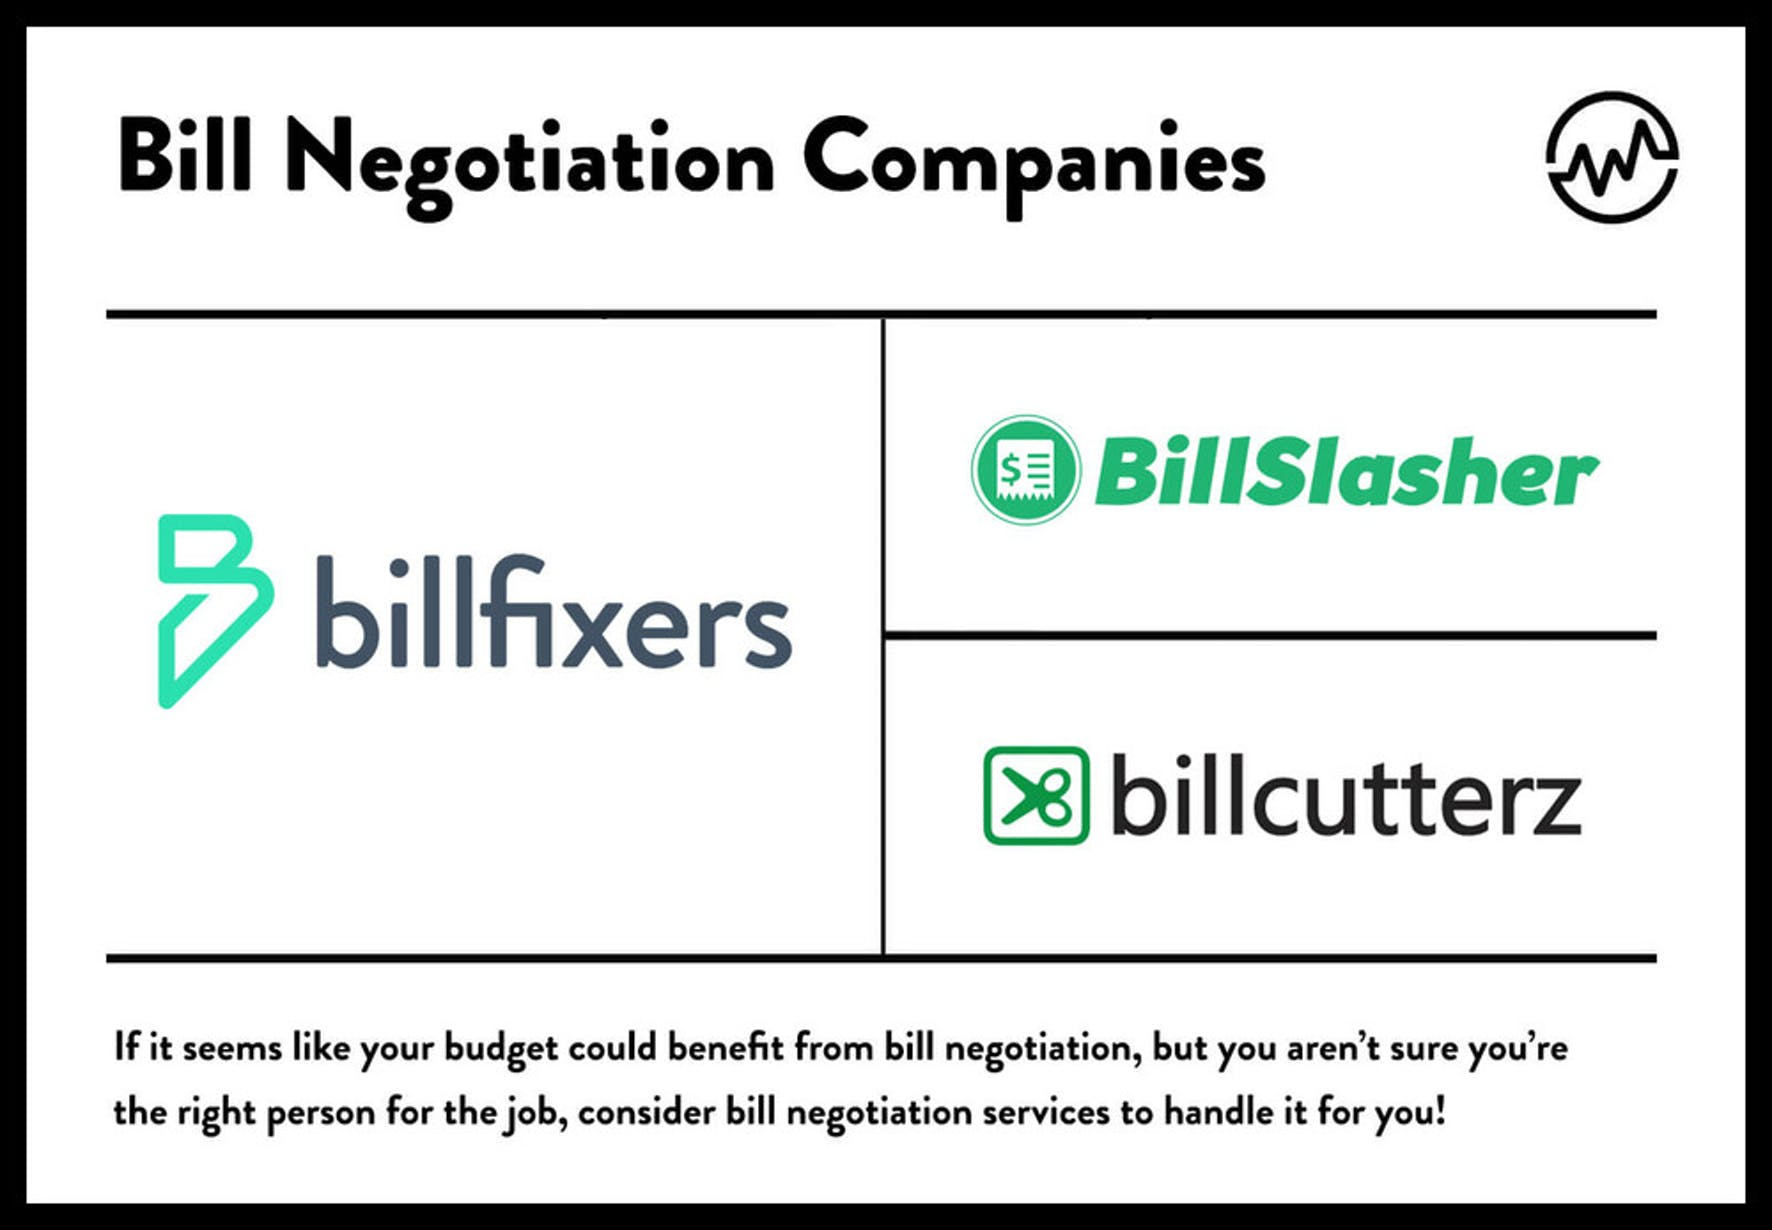 Bill Negotiation Companies